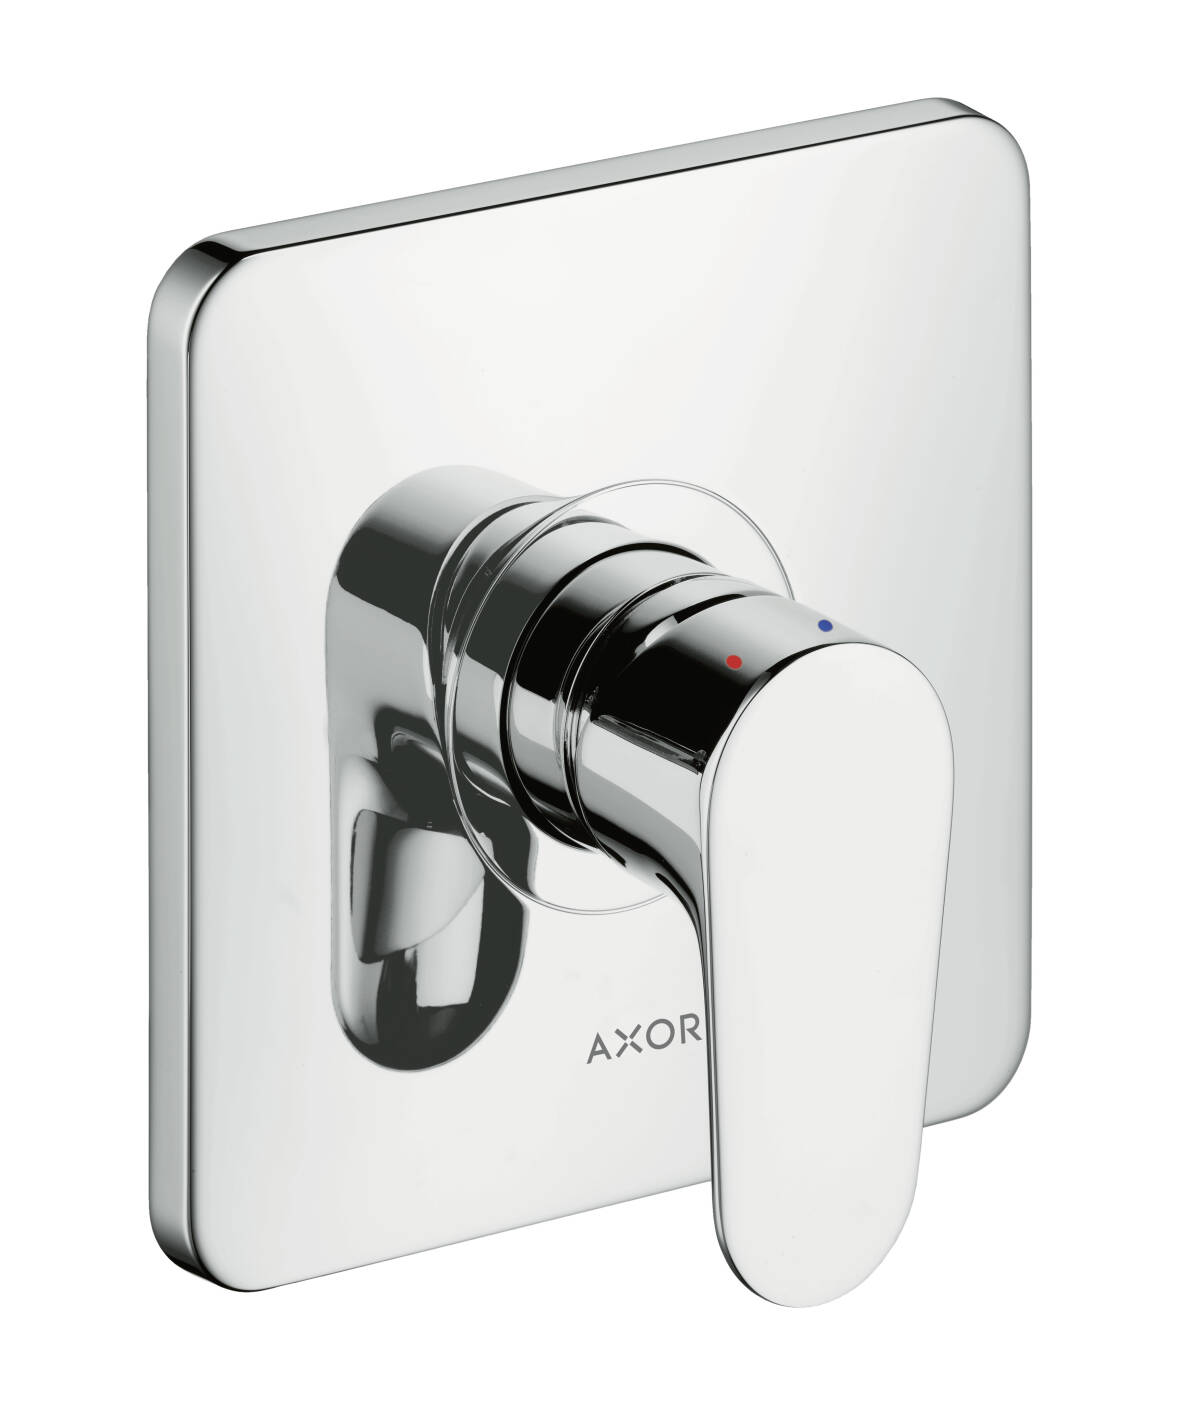 Single lever shower mixer for concealed installation, Chrome, 34625000